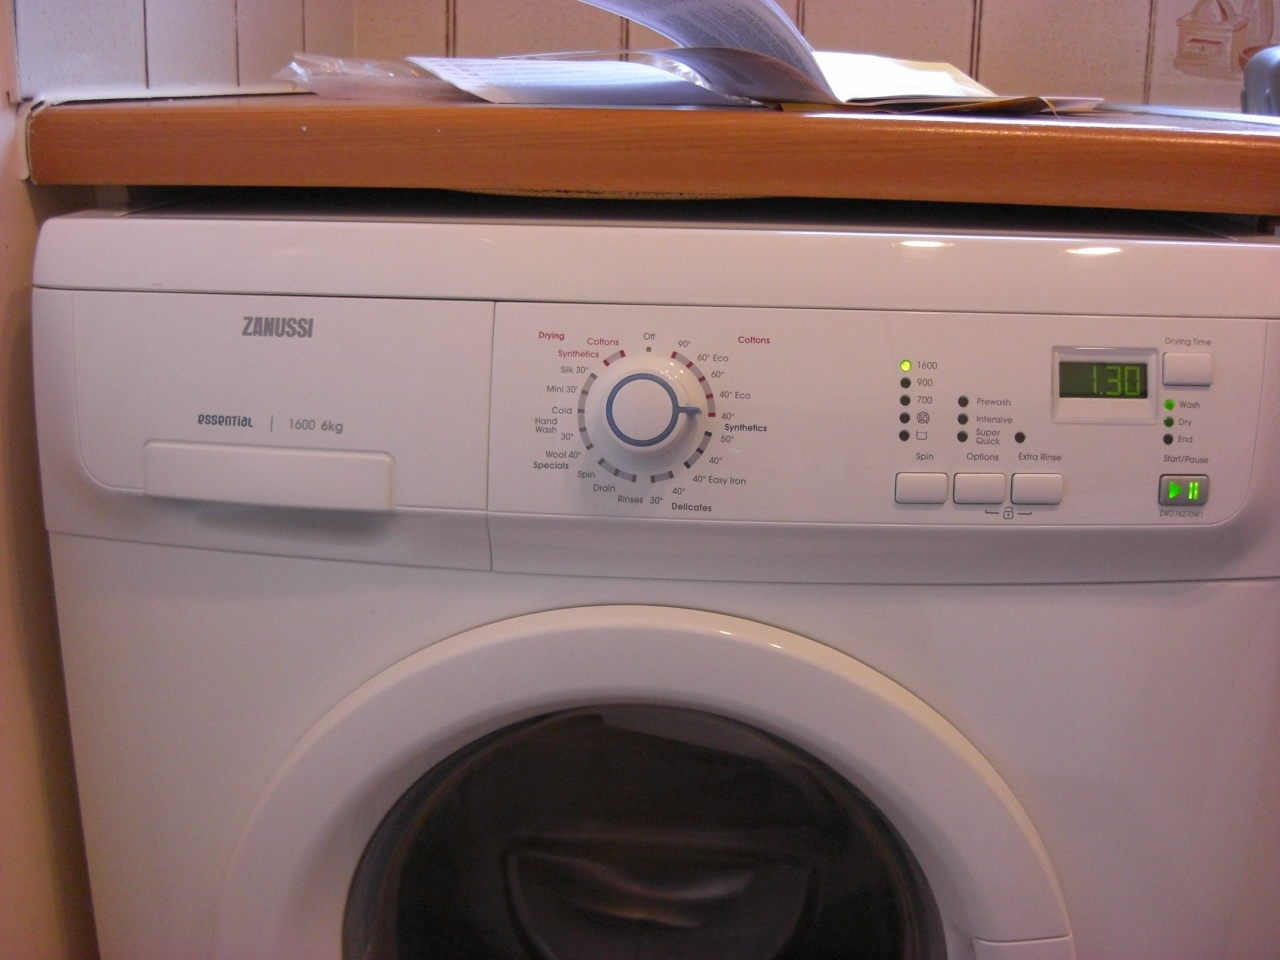 school washing machine